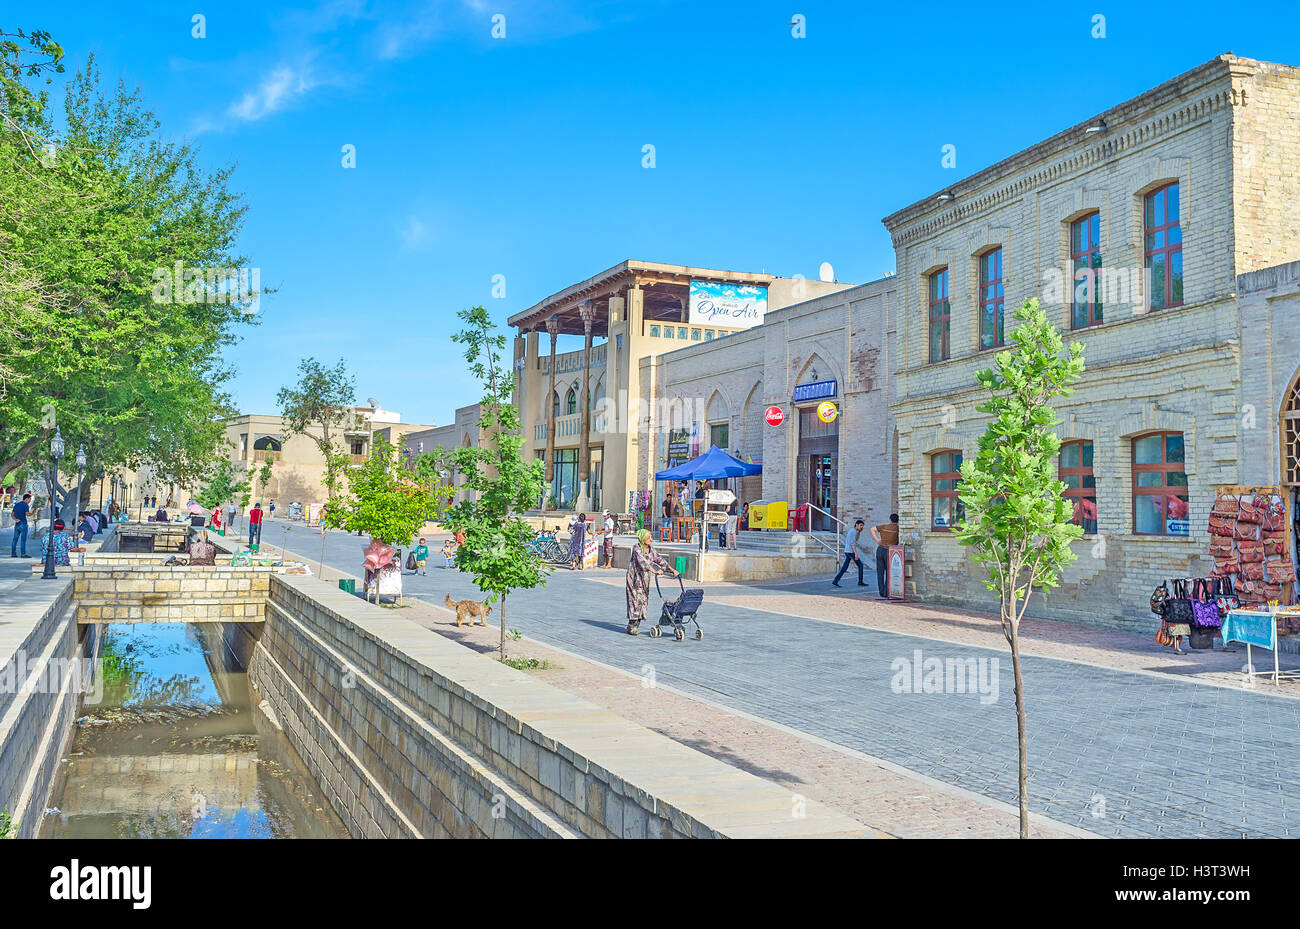 The street of Bakhowuddin Nakshbandi is one of the central tourist promenades in Bukhara. - Stock Image